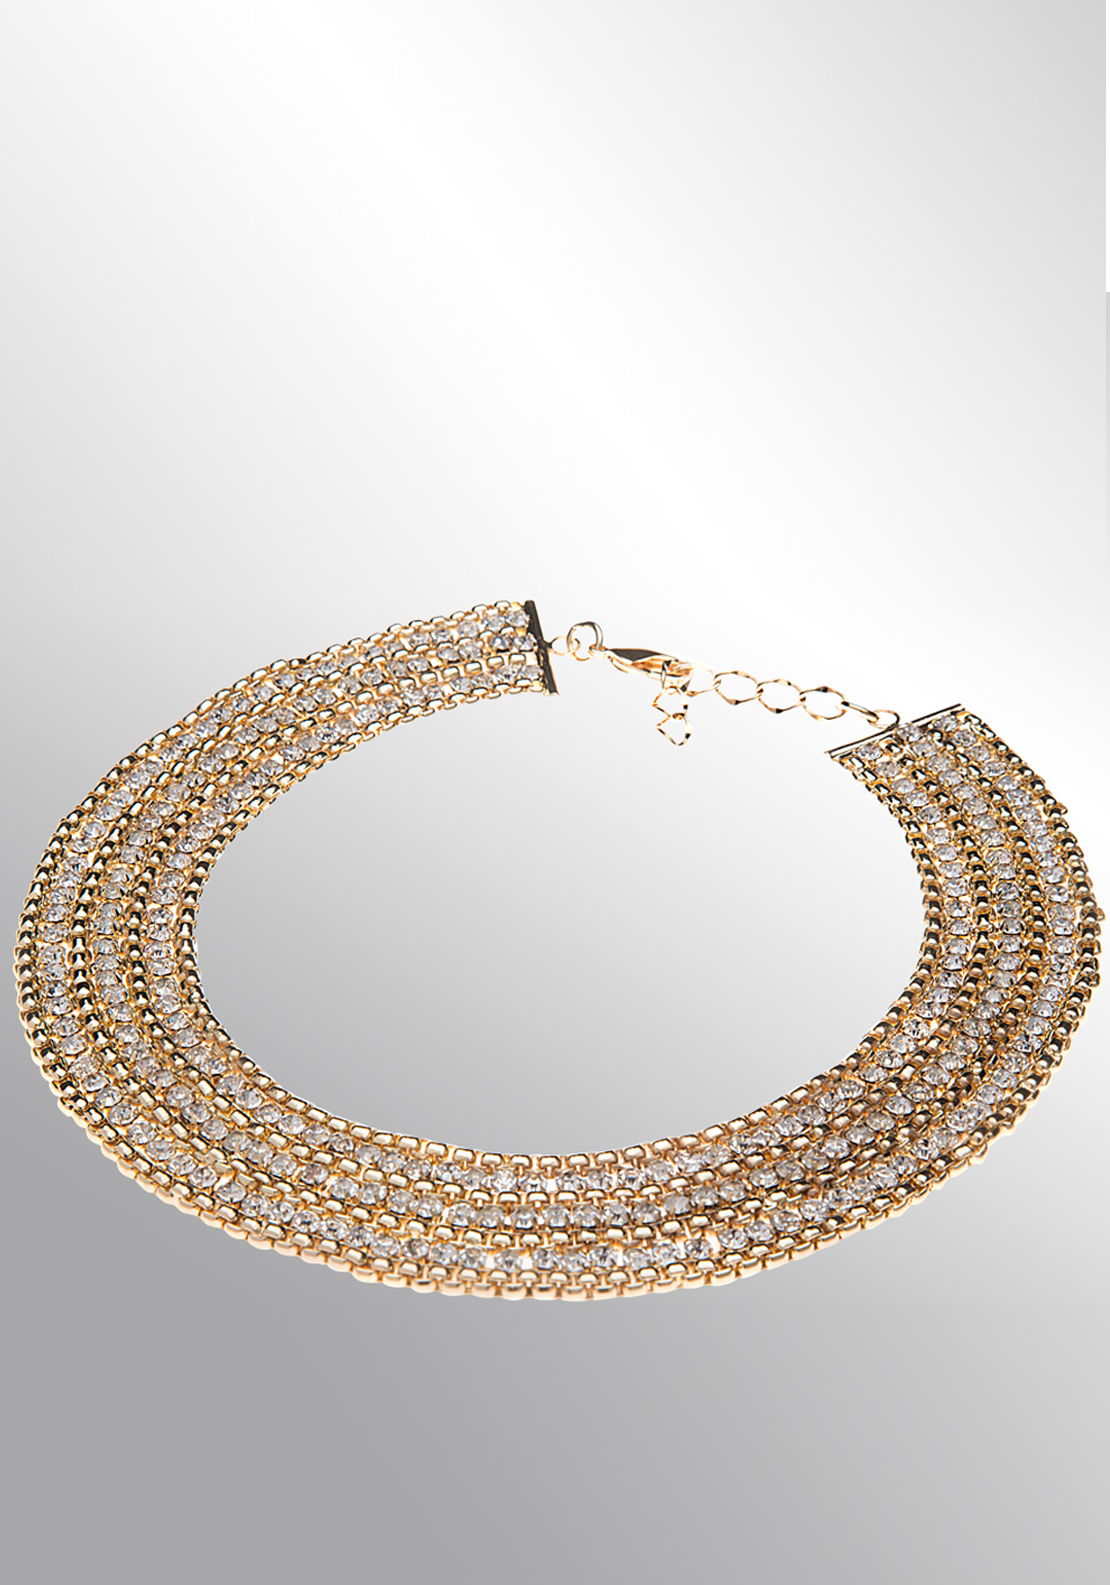 Newbridge eShe Collar Style Neckpiece with Clear Stone, Gold